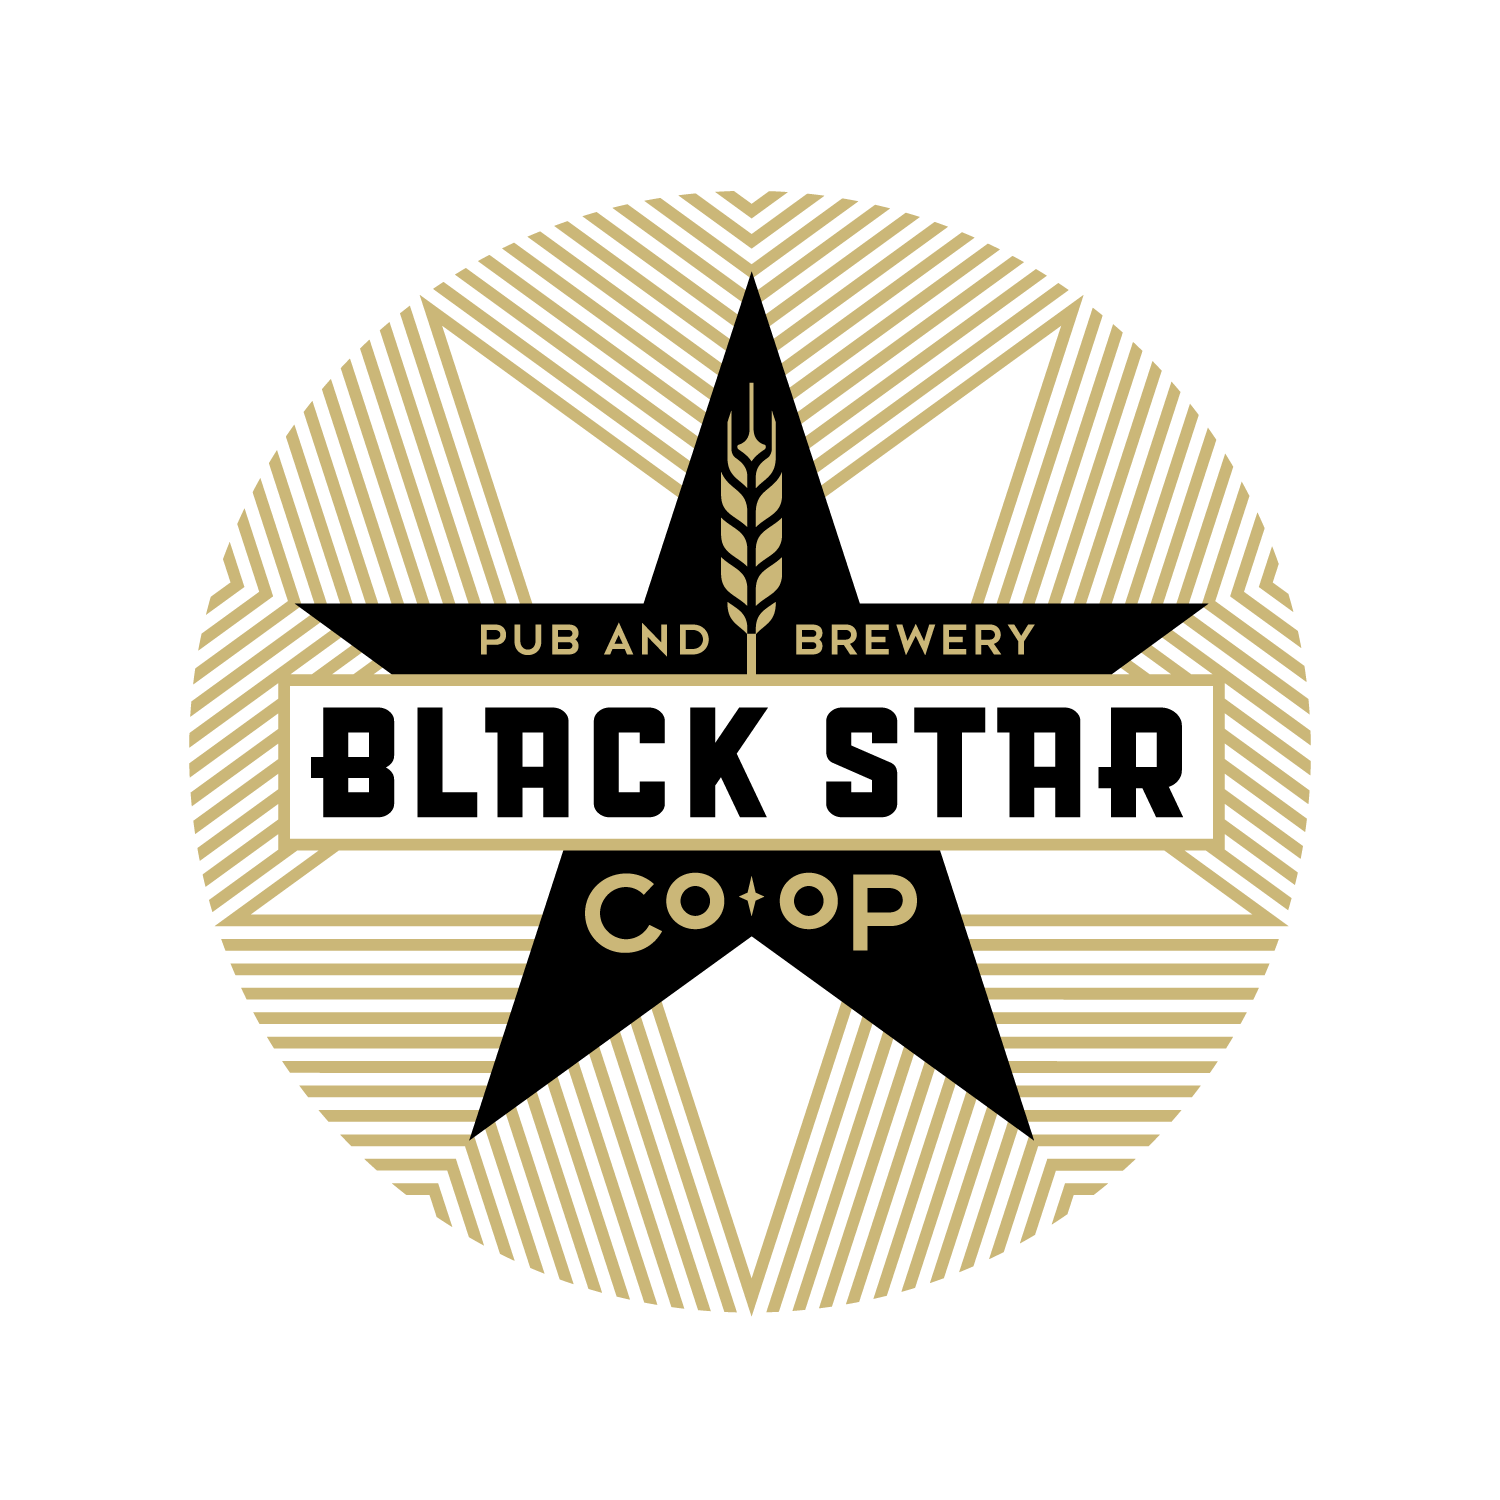 Black star image group. Converse clipart logo converse